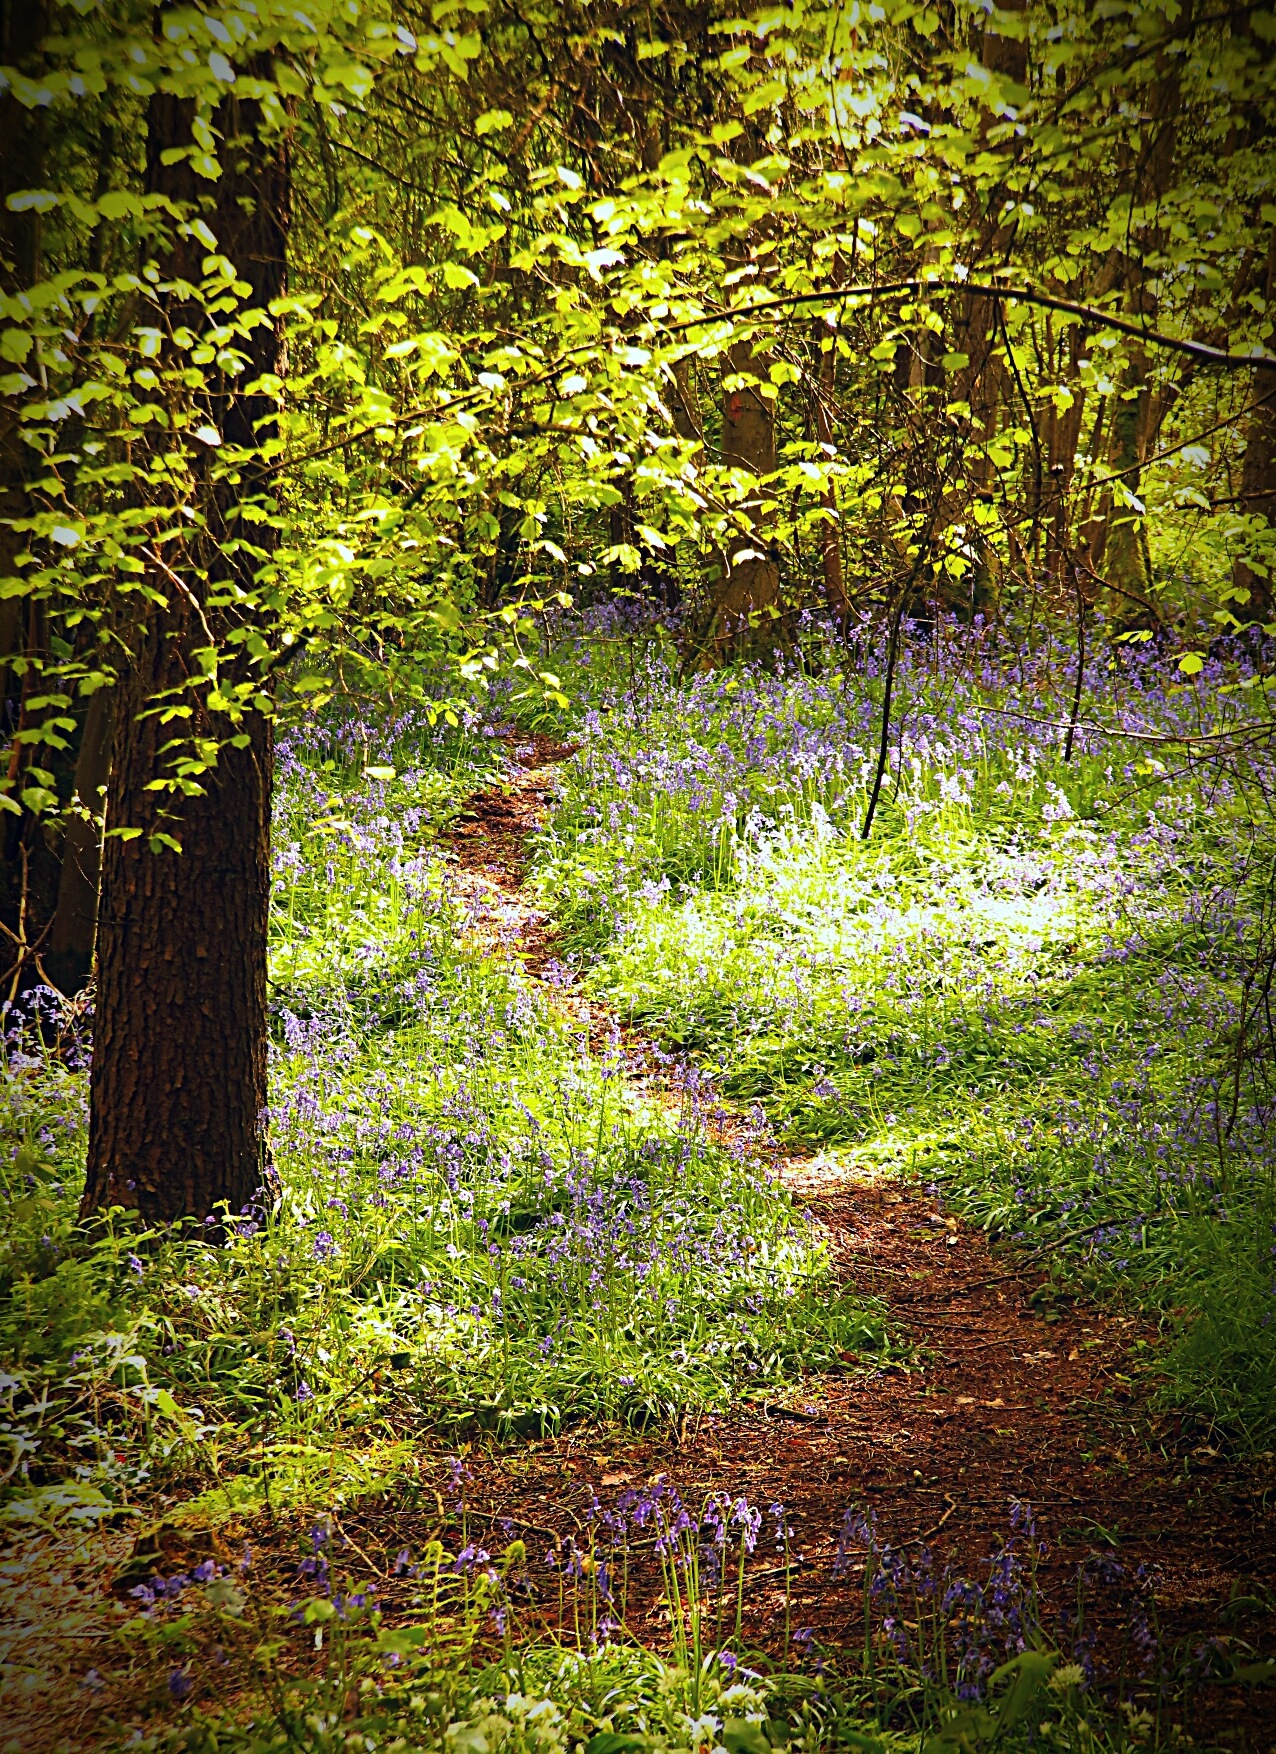 Footpath through the Woods by Yvonne Lewis